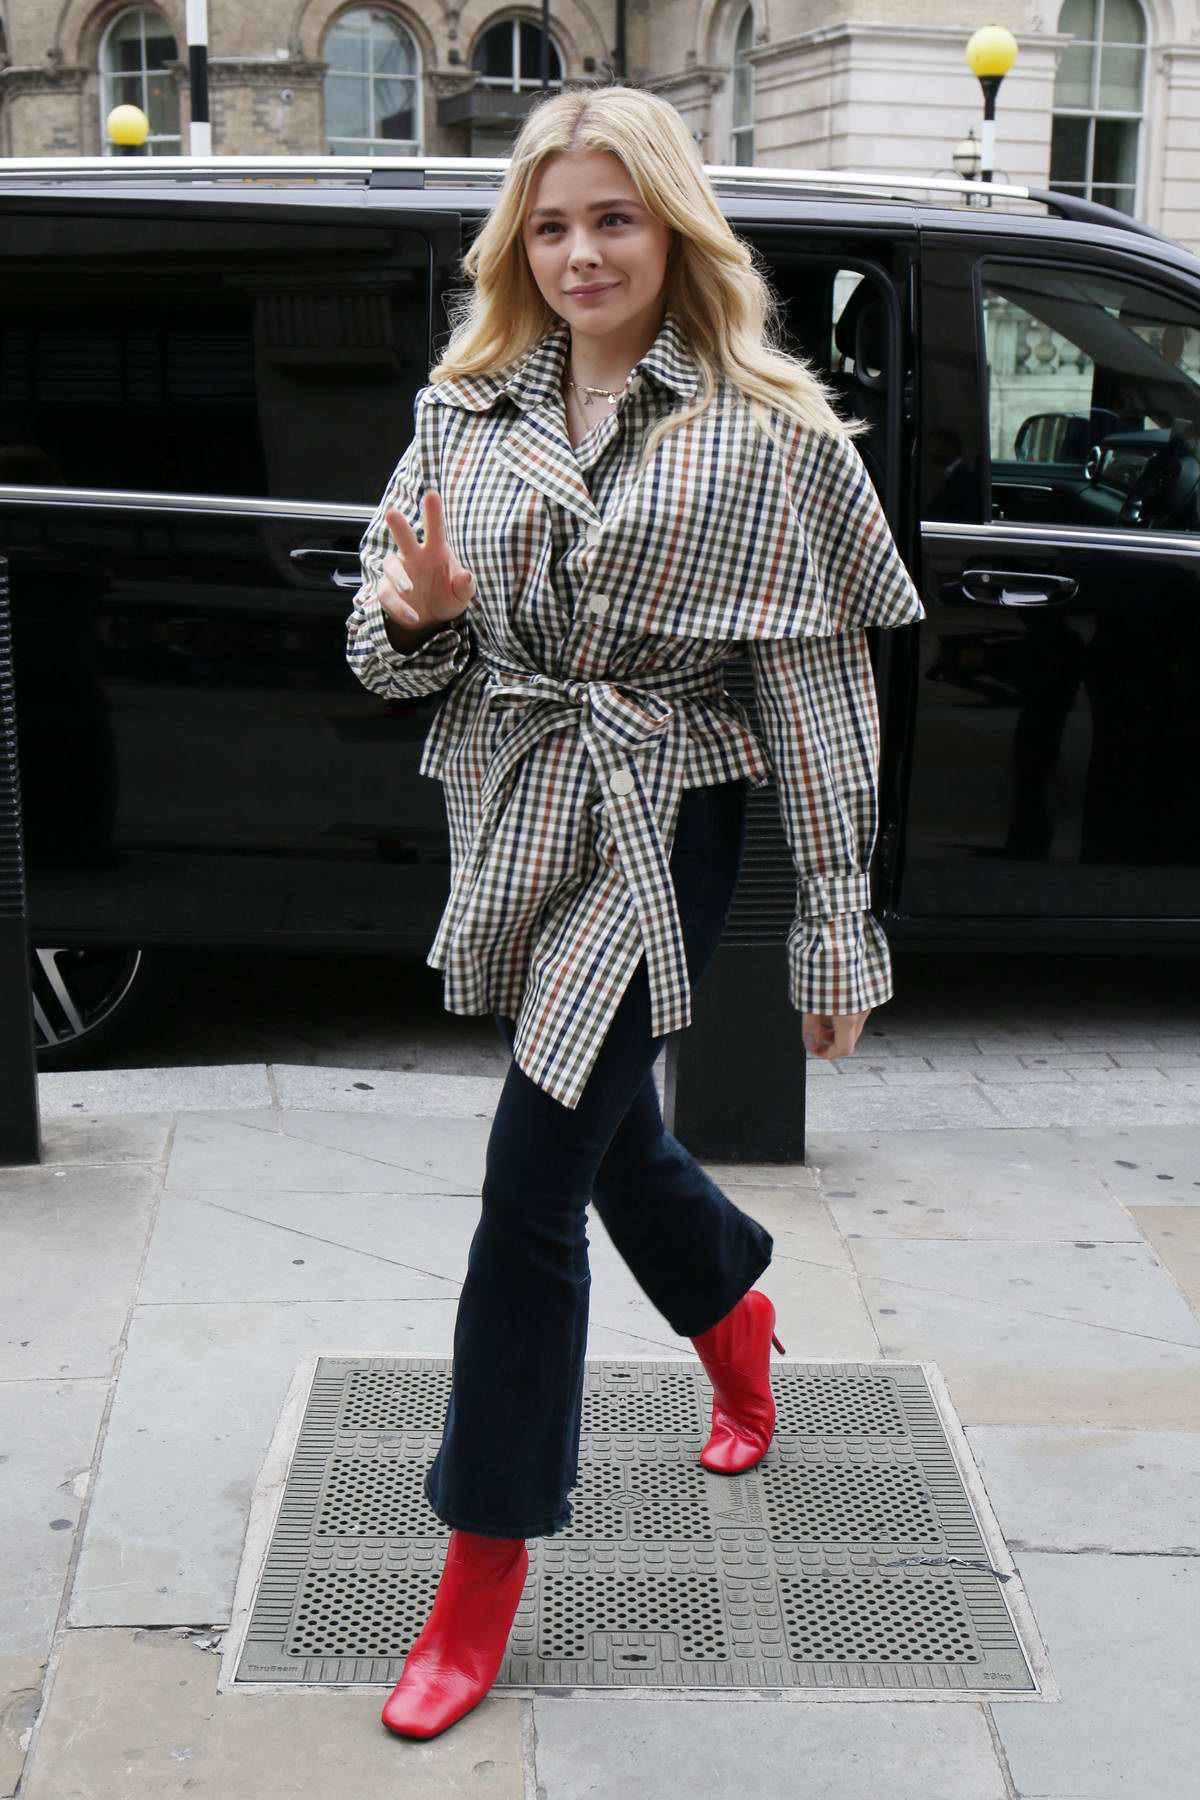 Chloe Grace Moretz steps out wearing a plaid coat and jeans with bright red boots in London, UK